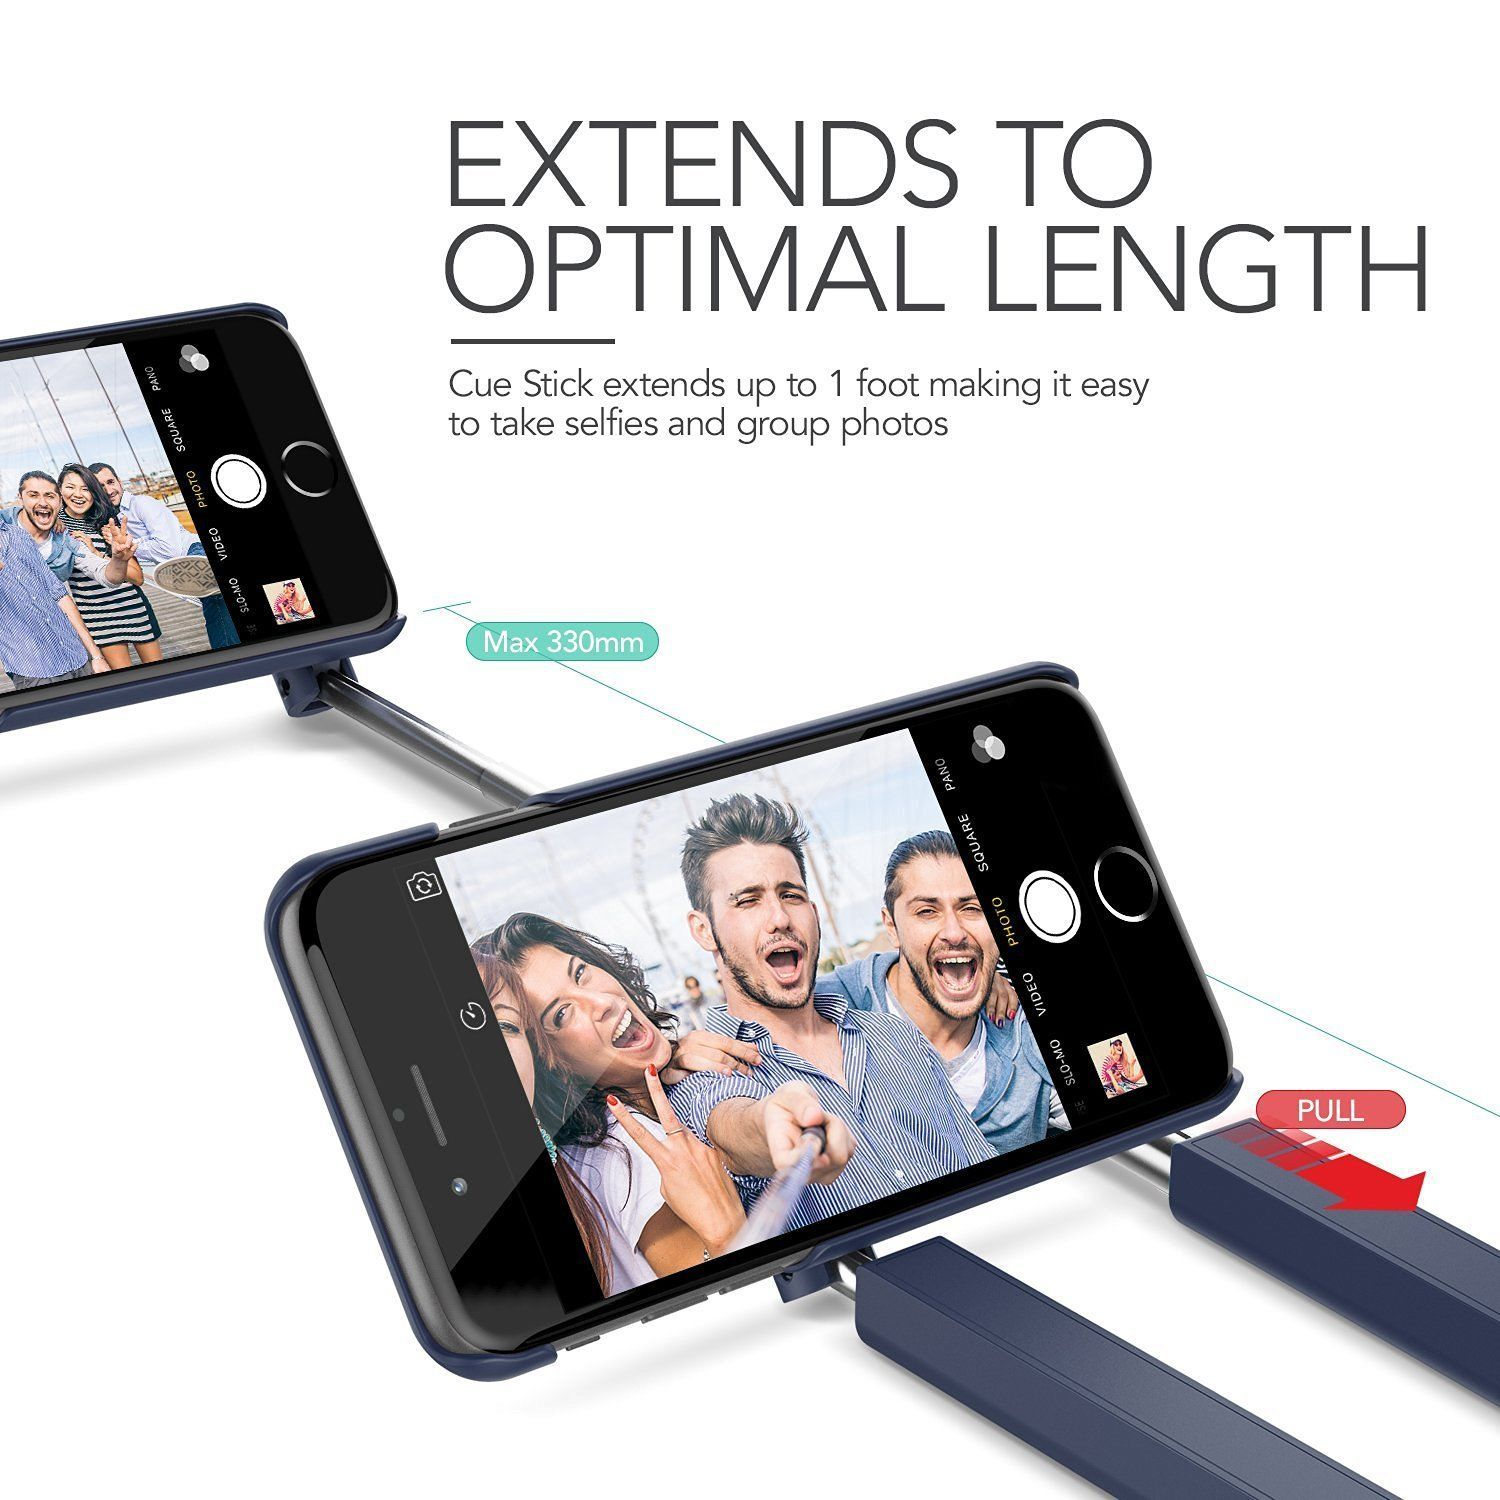 Verus Cue Stick Cases with a built selfie stick for iPhone 7 Blue or Silver